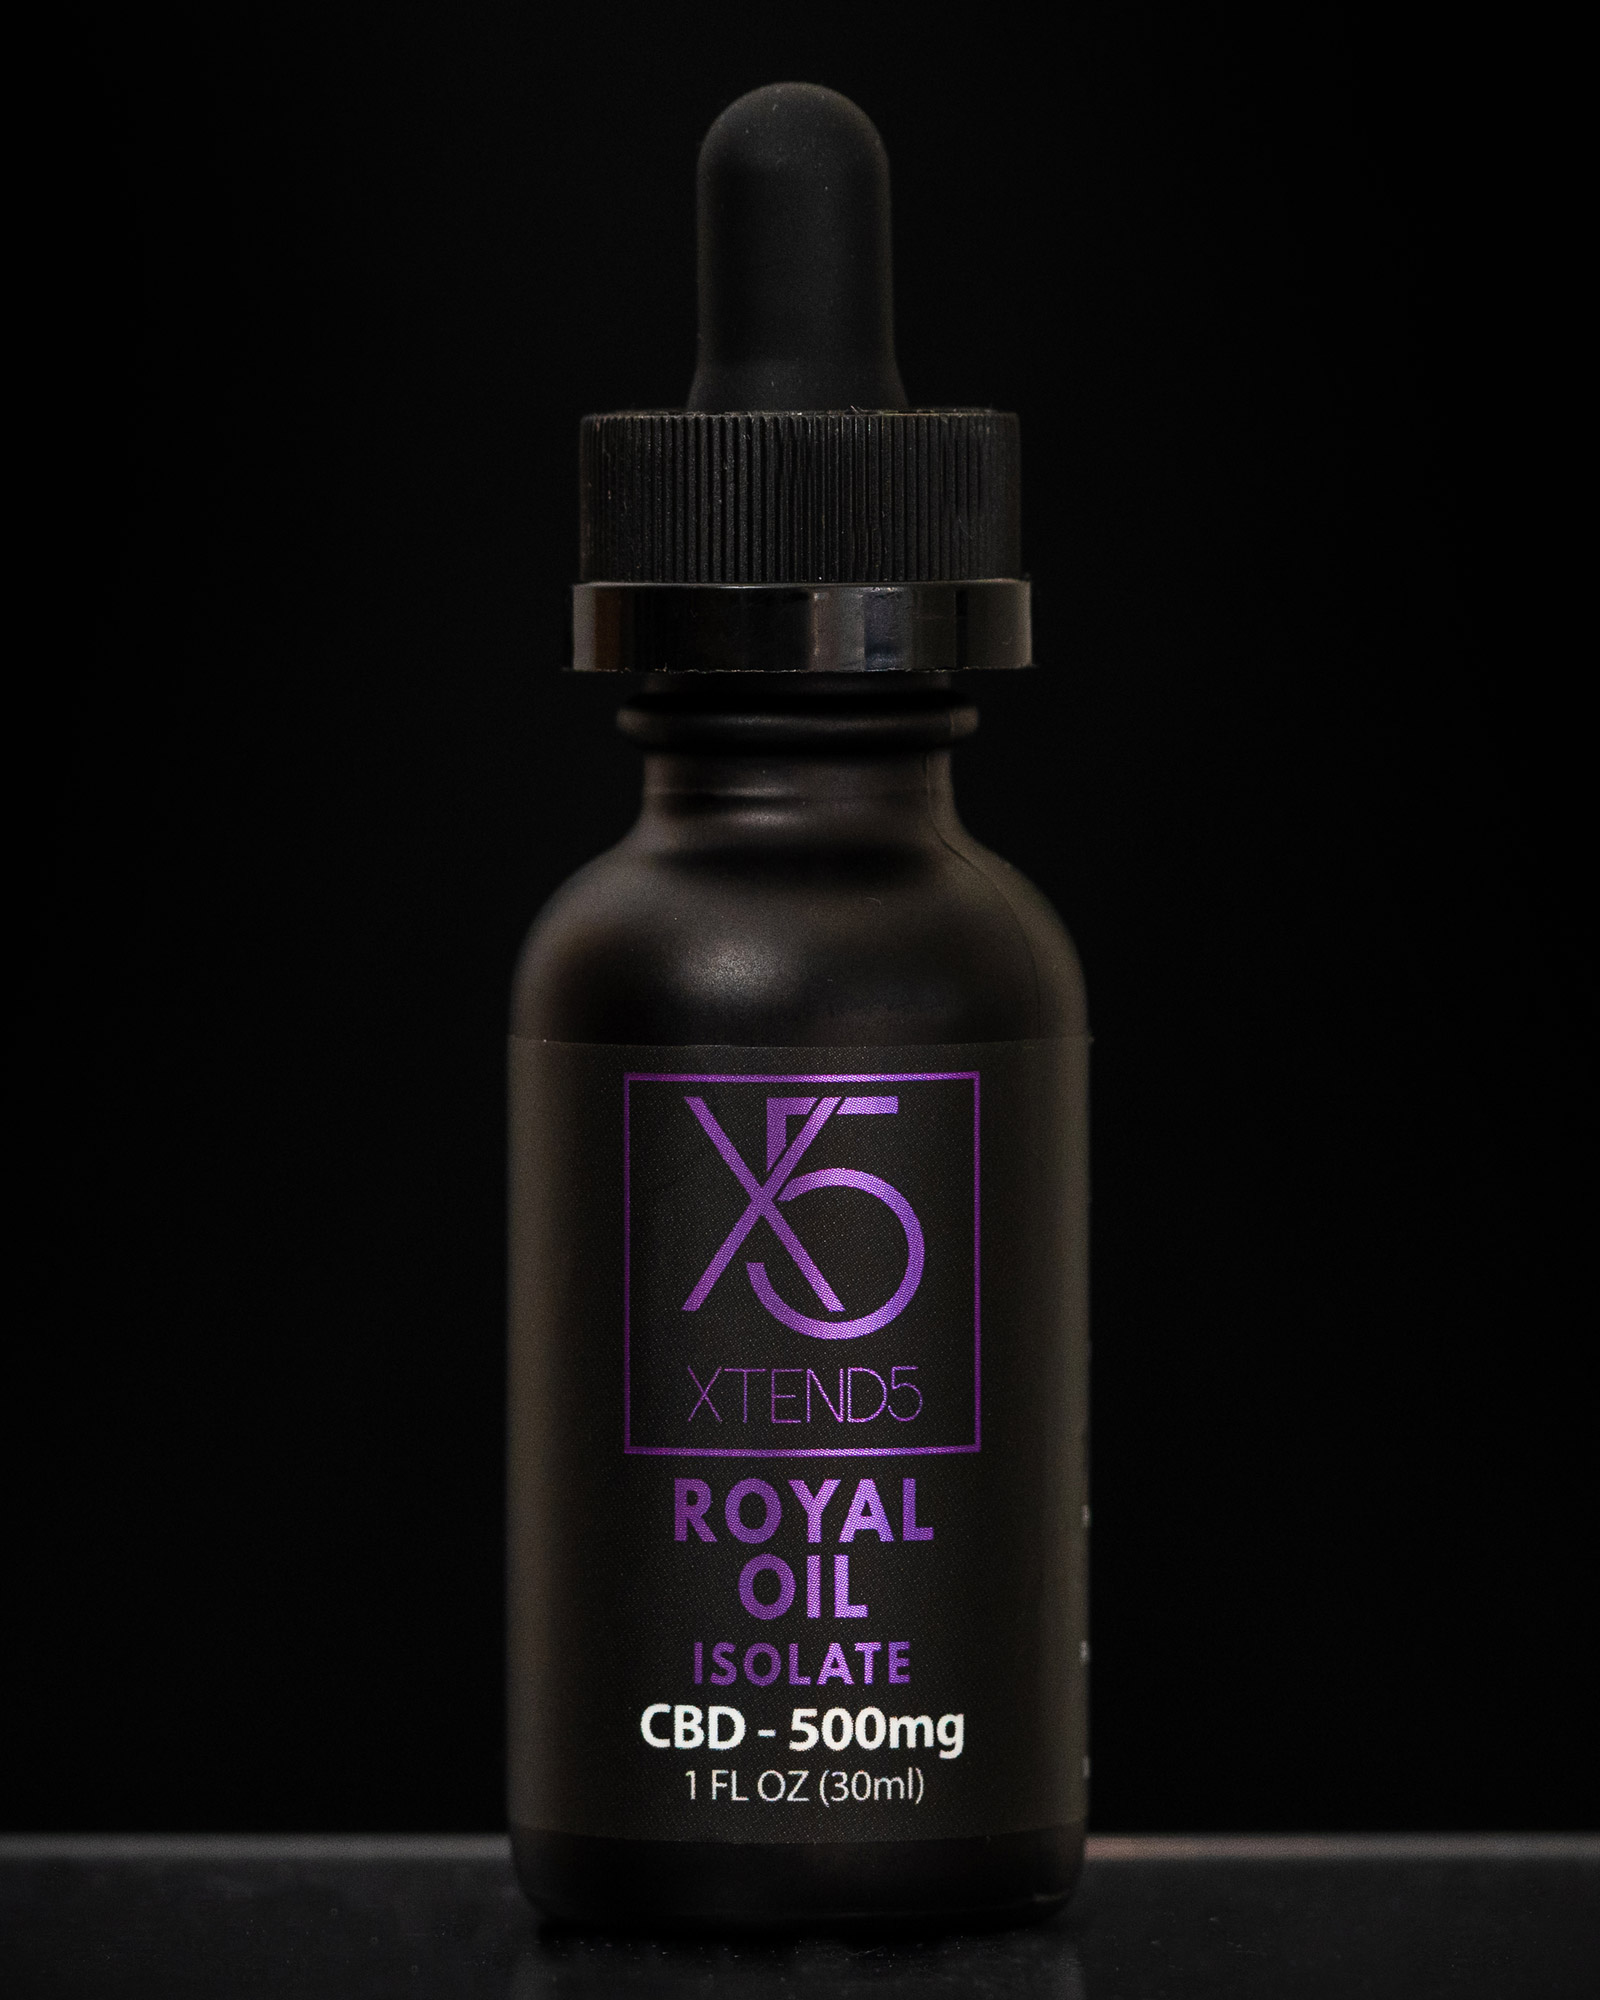 xtend5 royal oil 500mg - 500mg CBD Oil